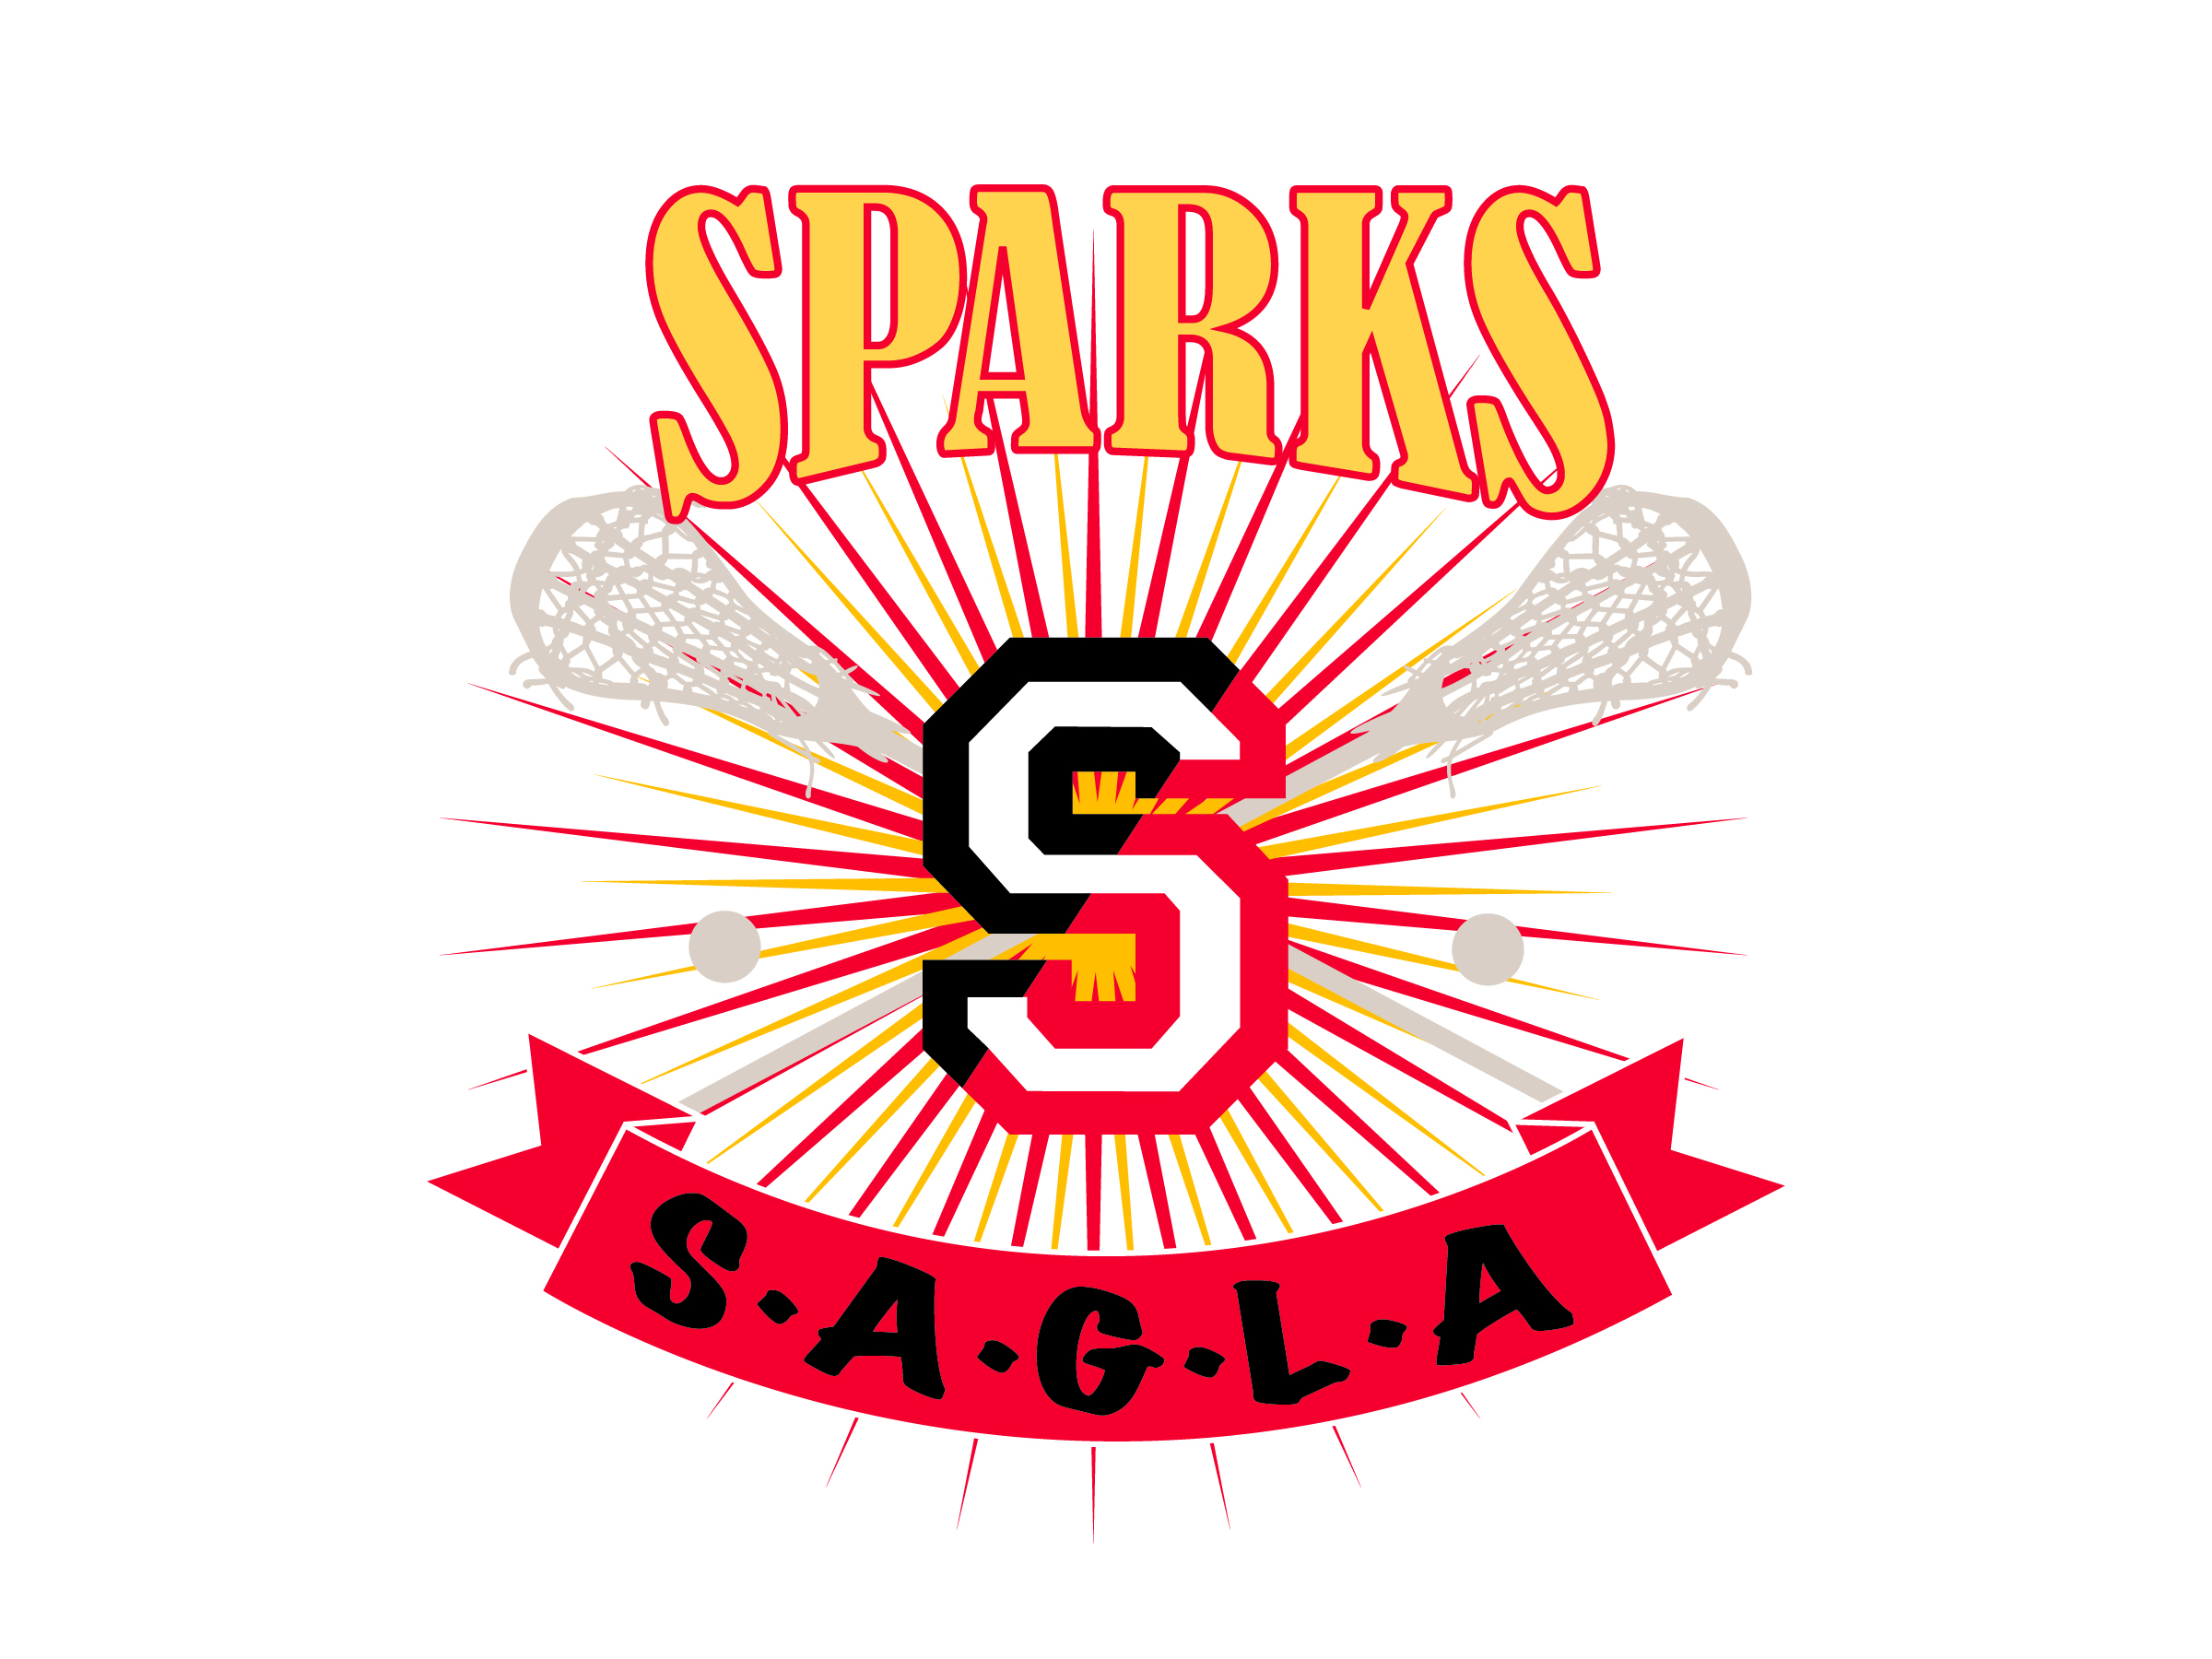 https://s3.amazonaws.com/files.leagueathletics.com/Images/Club/11709/Sparks/Logo/Sparks%20Logo%20for%20black2.jpg